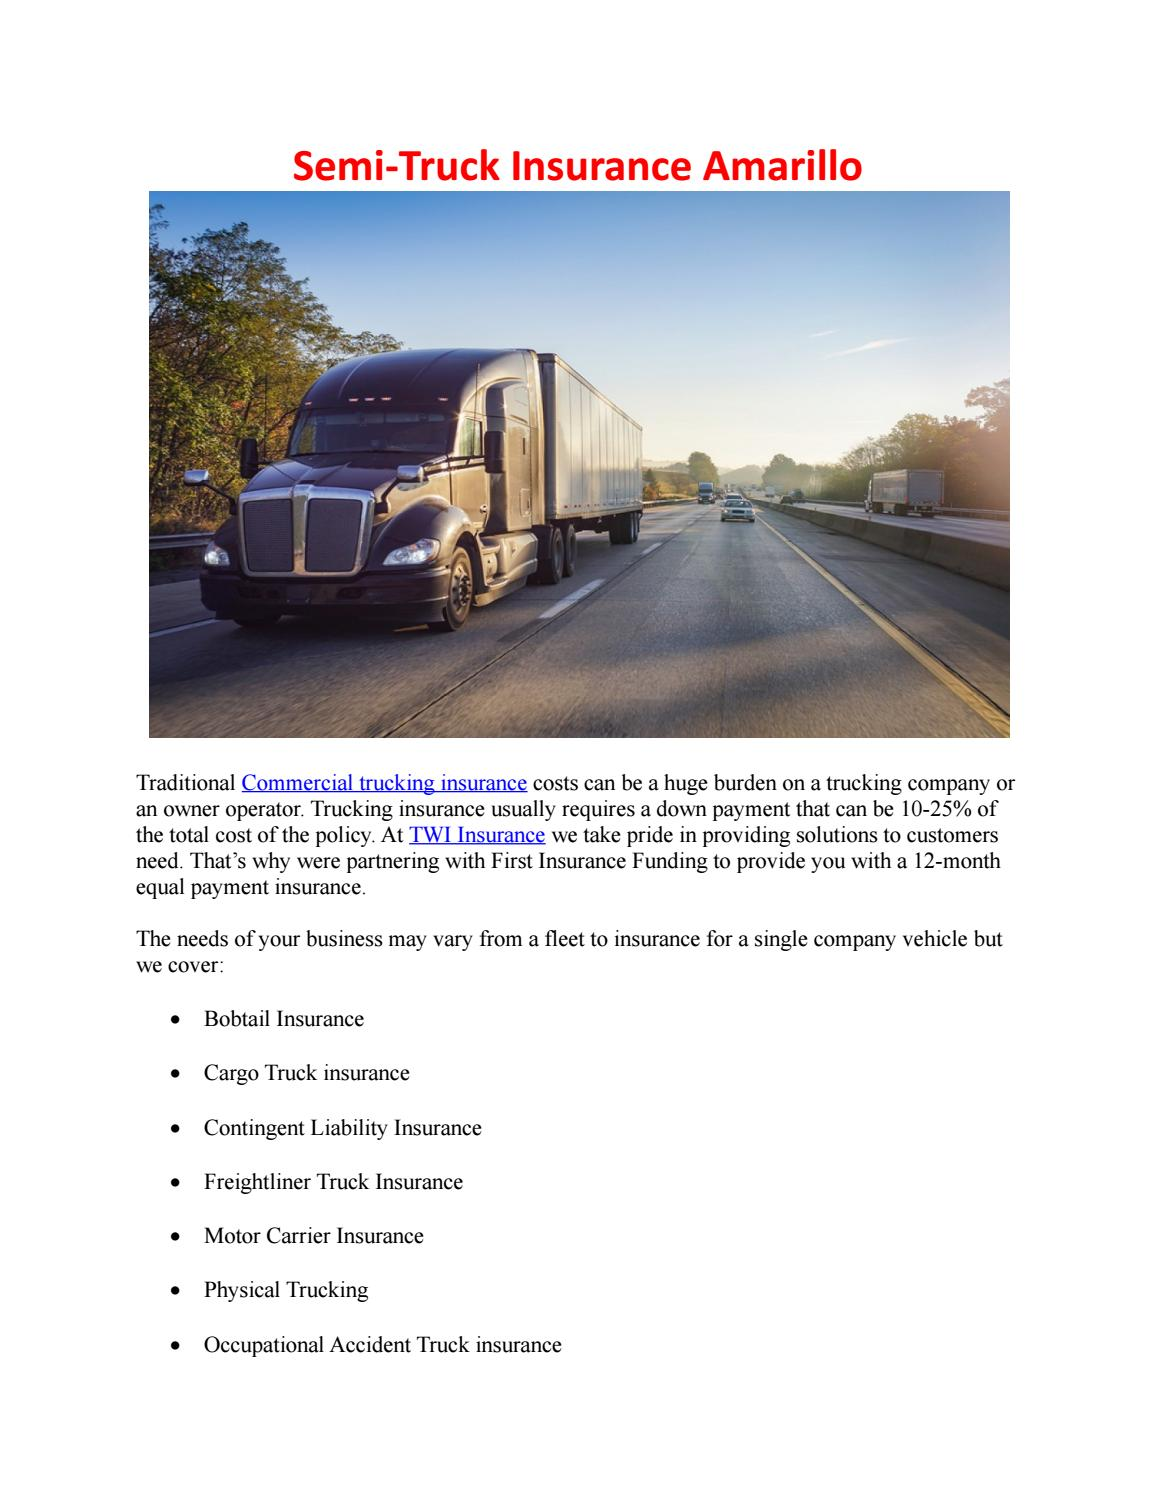 Semi-Truck Insurance Amarillo by thetwiagency - issuu